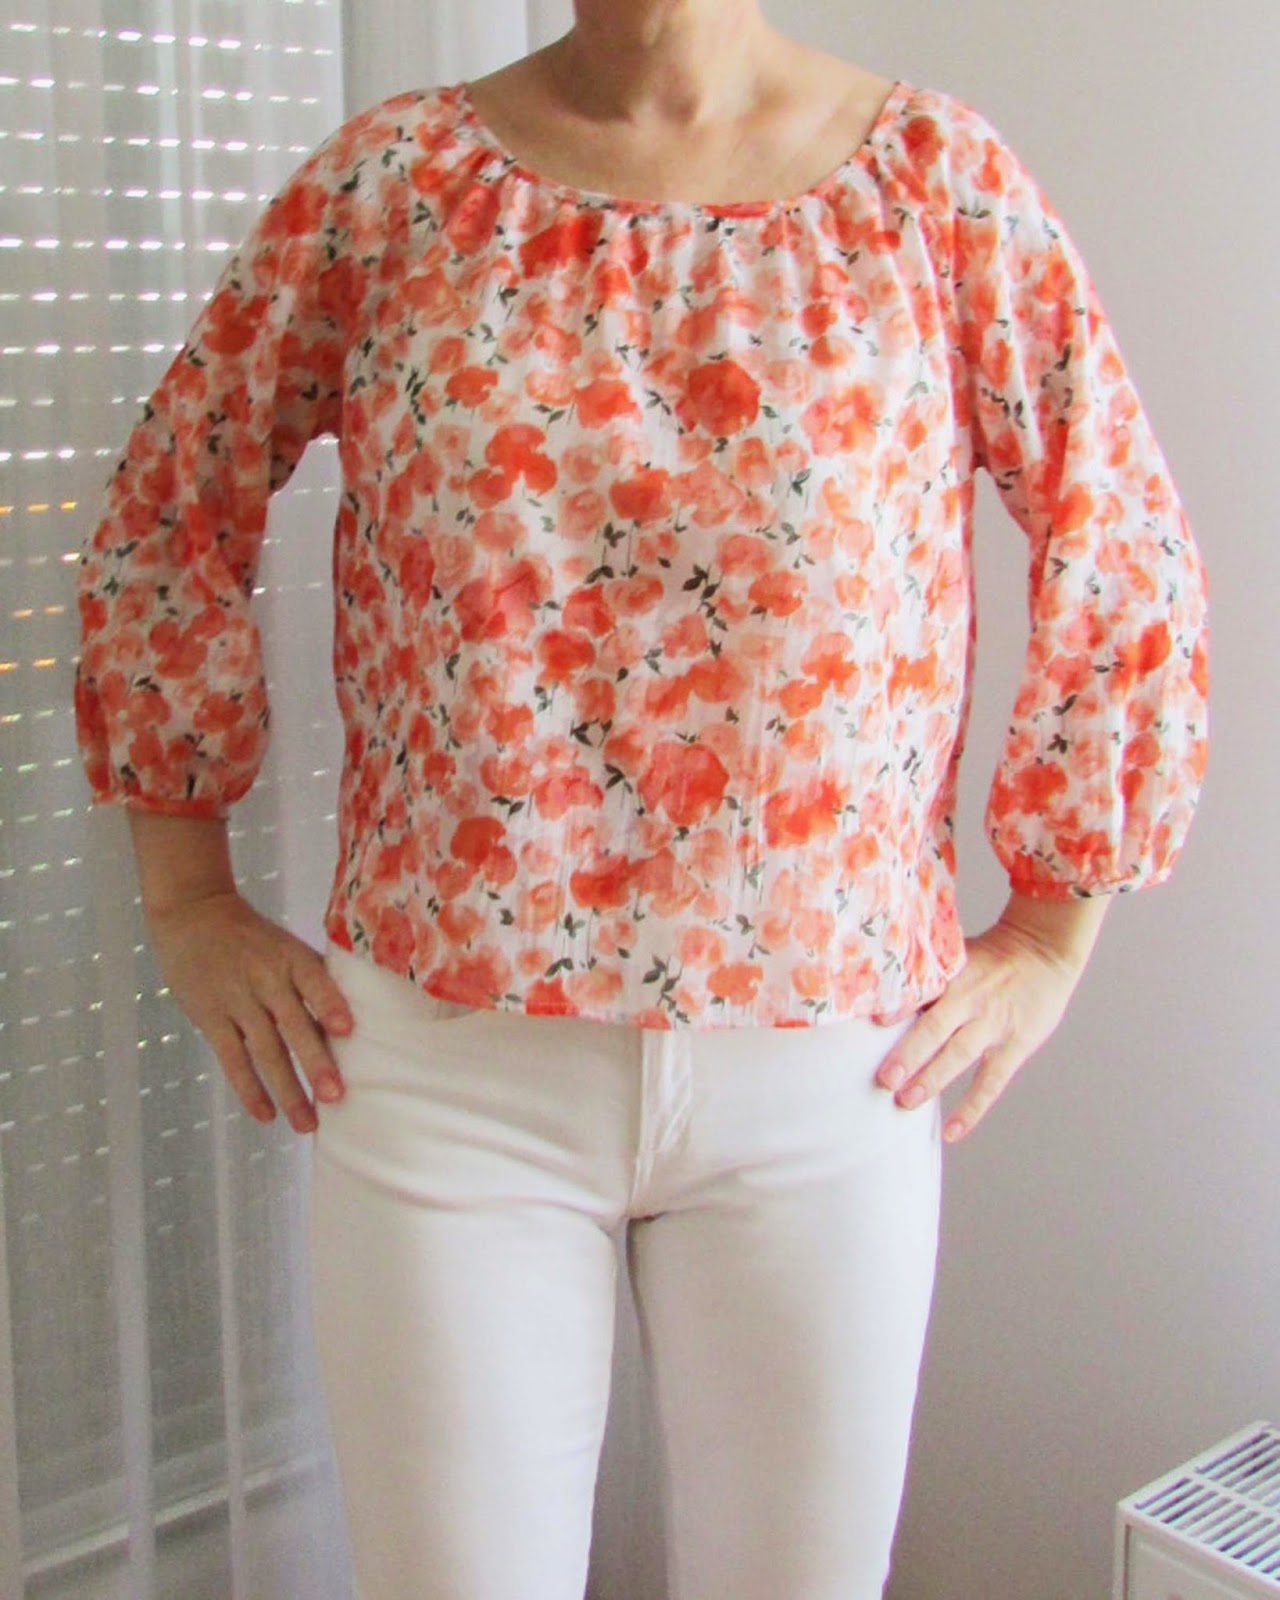 http://ladylinaland.blogspot.com/2014/06/orange-romantic-blouse.html